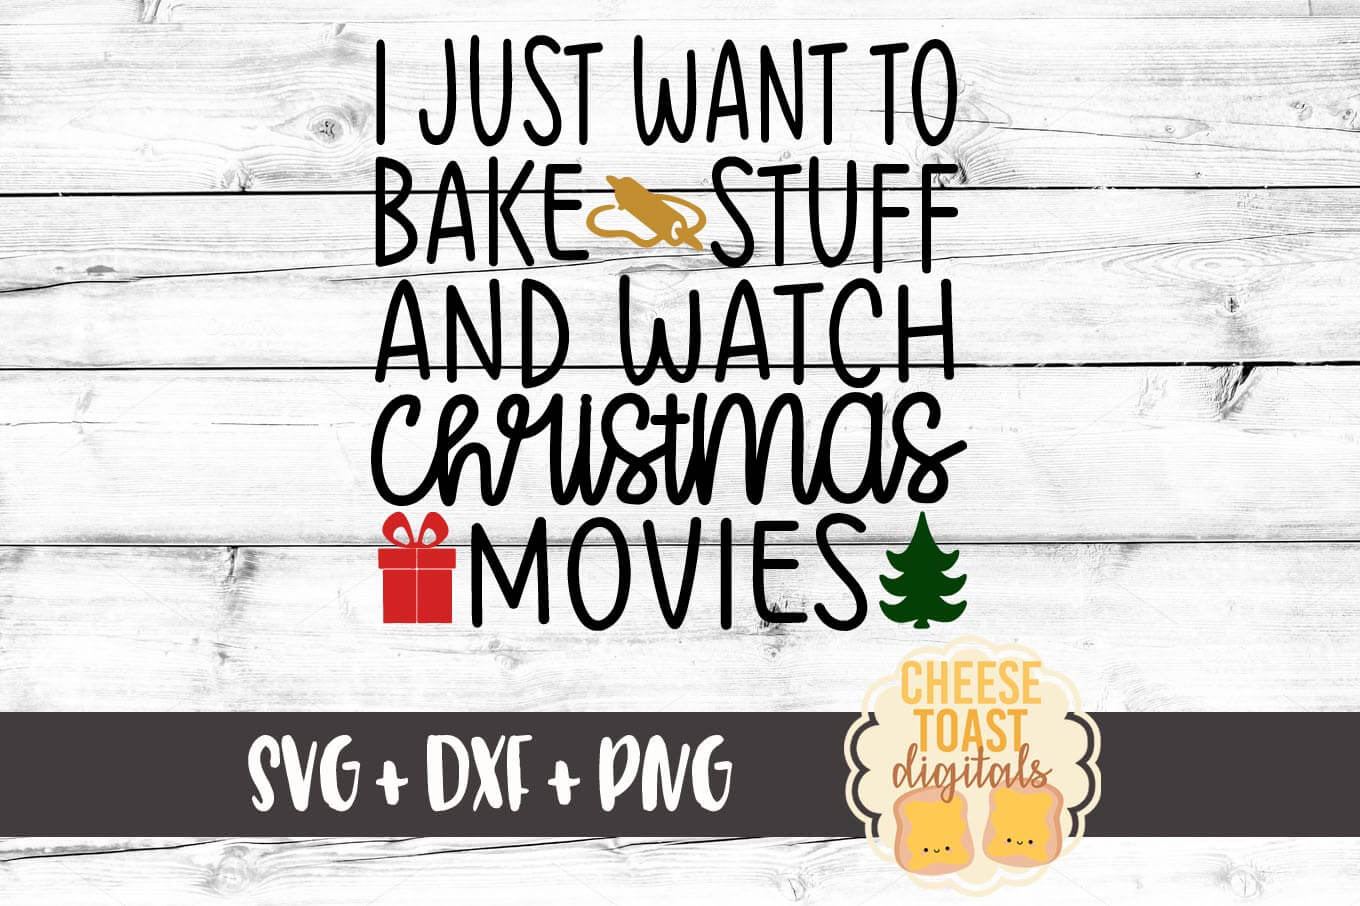 I Just Want To Bake Stuff and Watch Christmas Movies - SVG, PNG, DXF